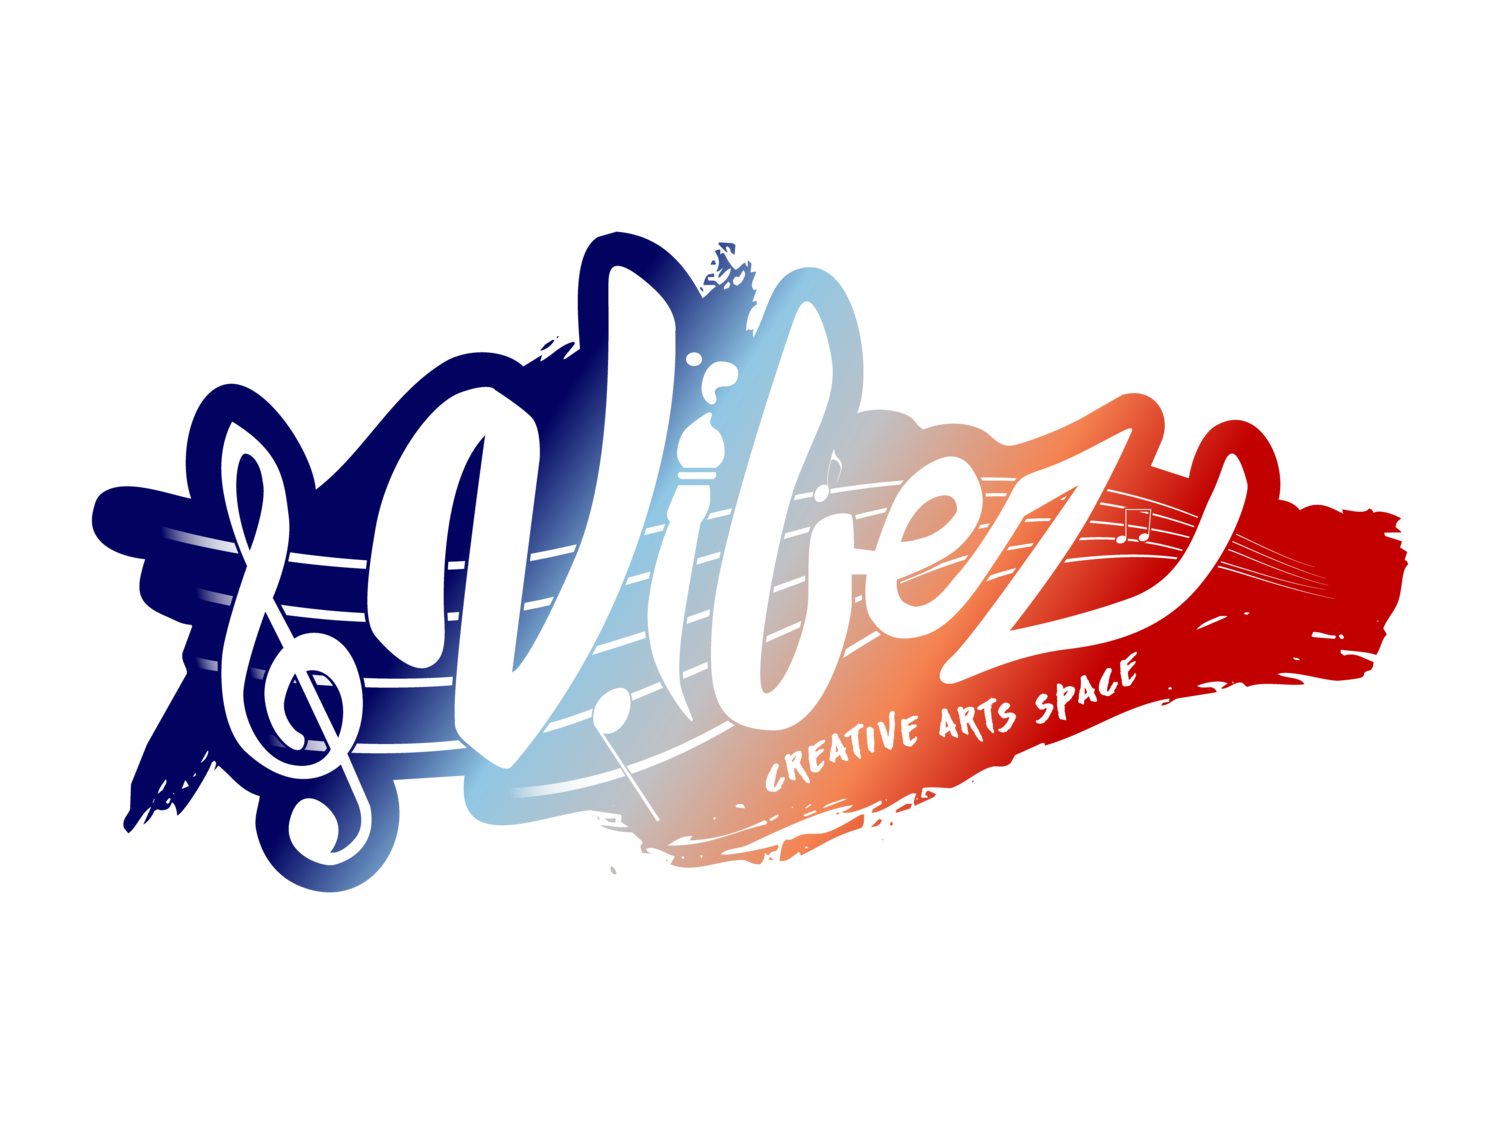 VIBEZ Creative Arts Space